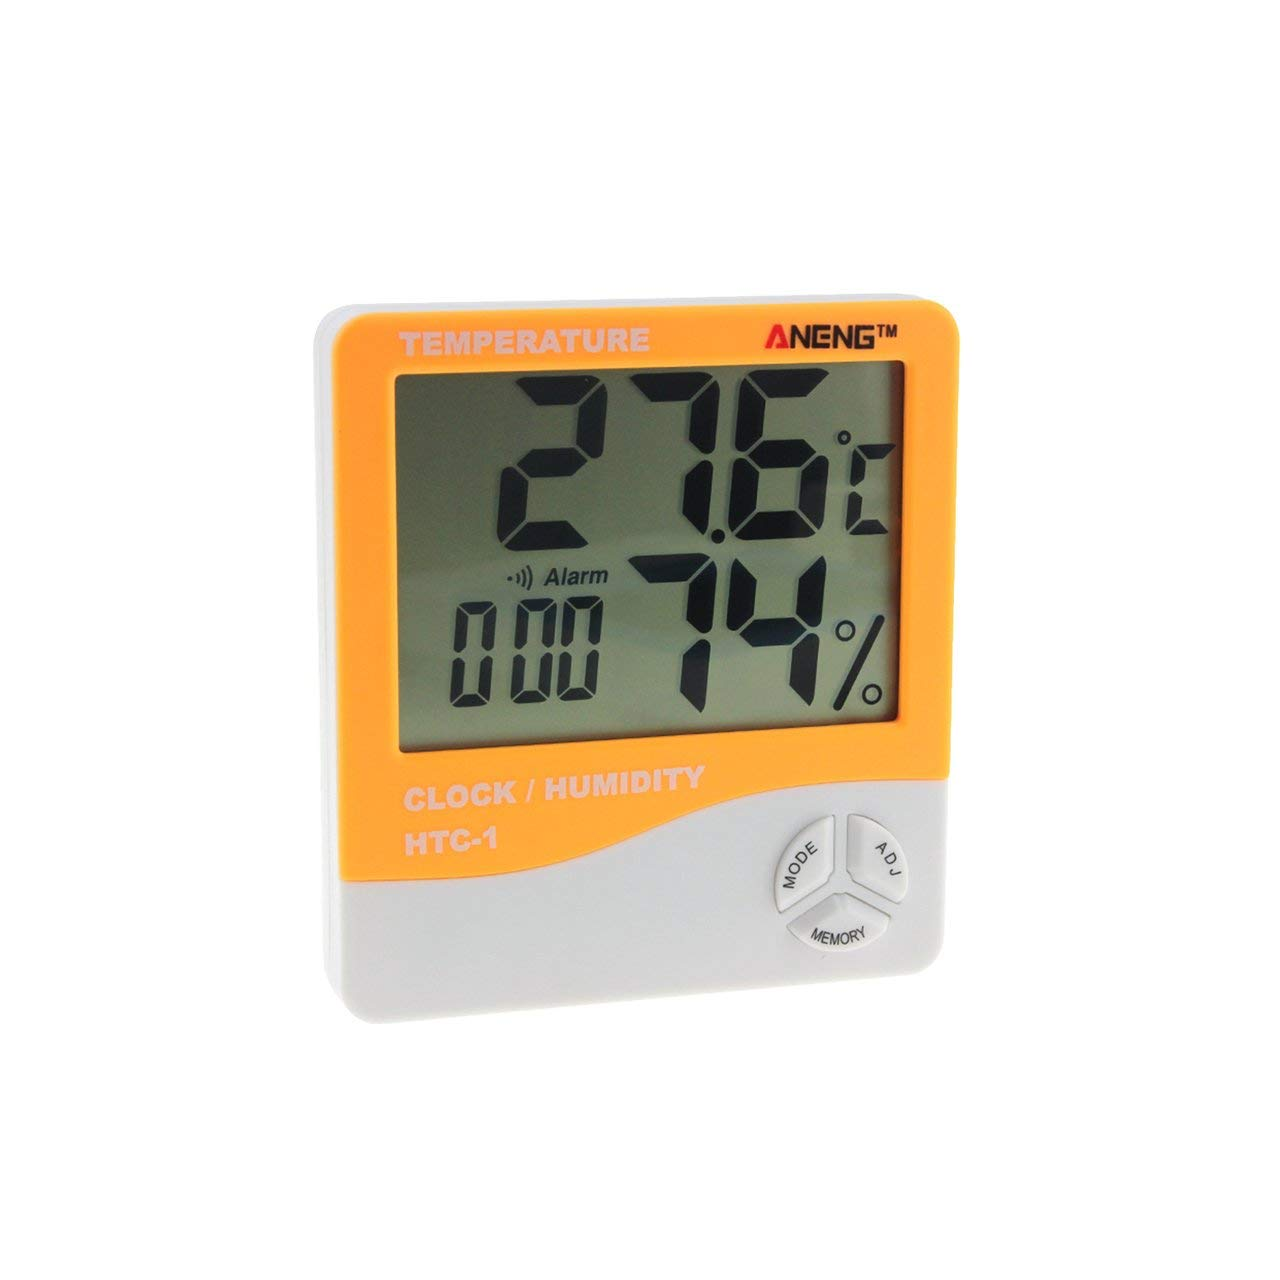 Jasnyfall HTC-1 Indoor LCD Electronic Digital Temperature Humidity Meter Room Thermometer Hygrometer Alarm Clock Weather Station Black